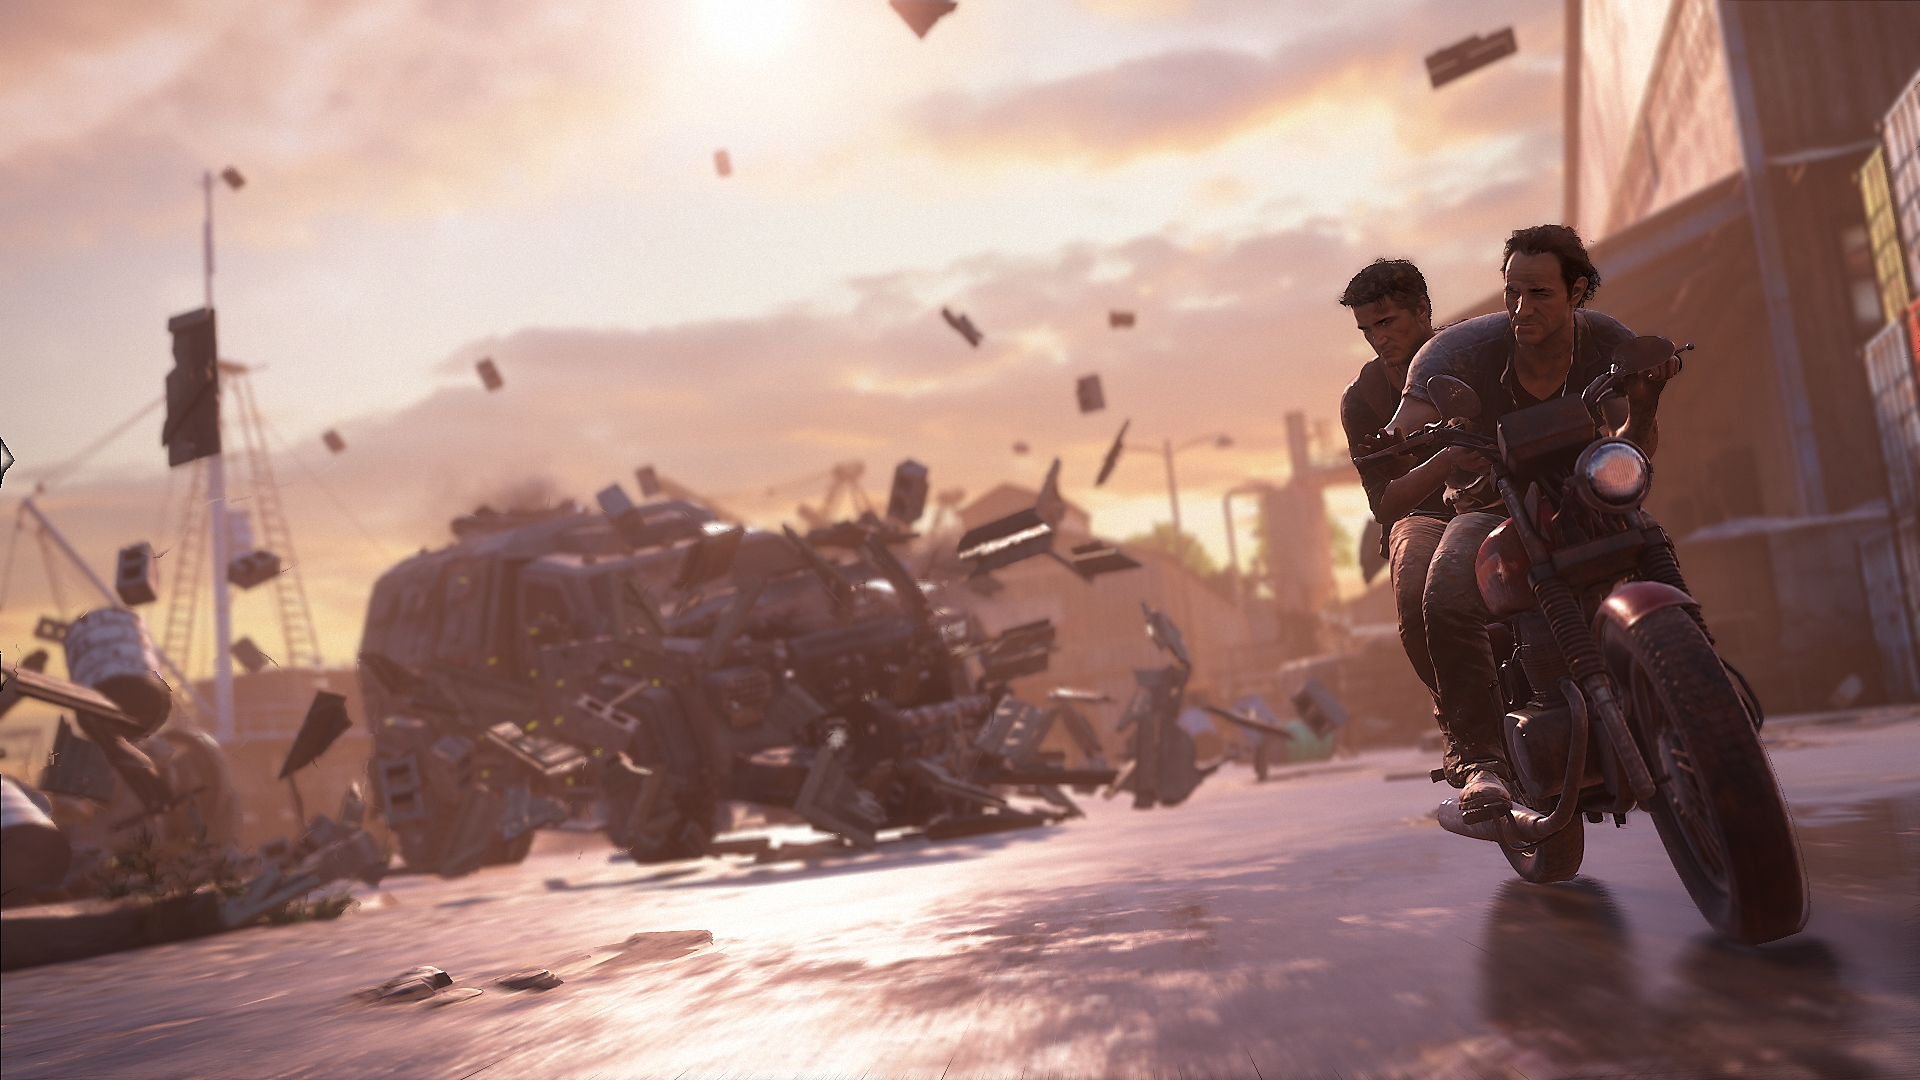 captura de pantalla de uncharted a thief's end